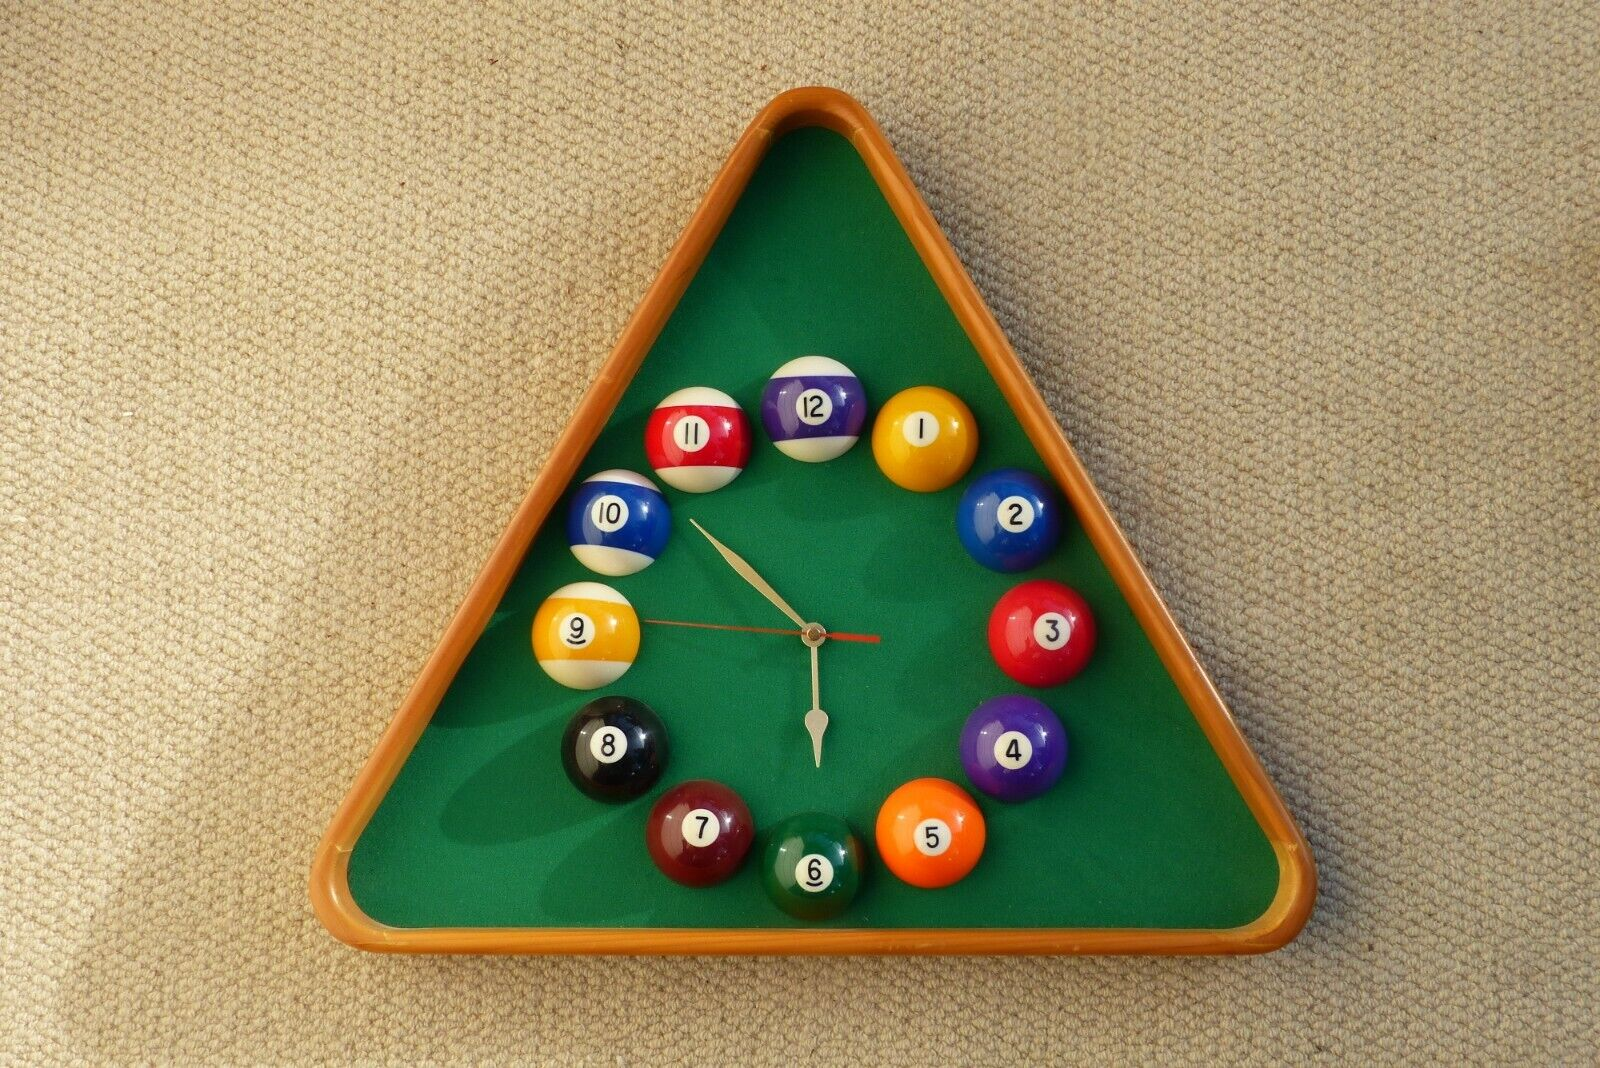 large 20in Side Triangular Wooden Pool Ball Billiards Rack Wall Clock VGC Used